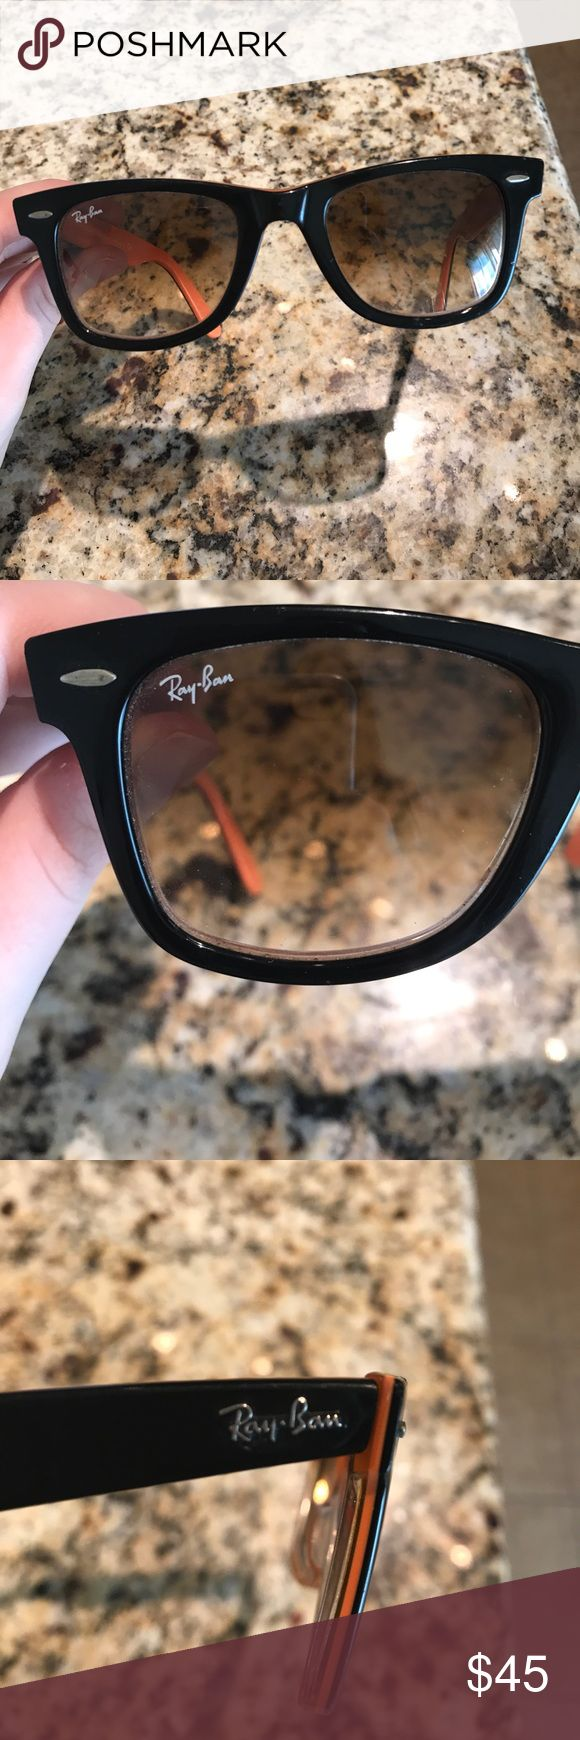 ray-ban original wayfarer sunglasses used authentic black and orange ray-ban wayfarer glasses. some scratches but still cute! Ray-Ban Accessories Sunglasses